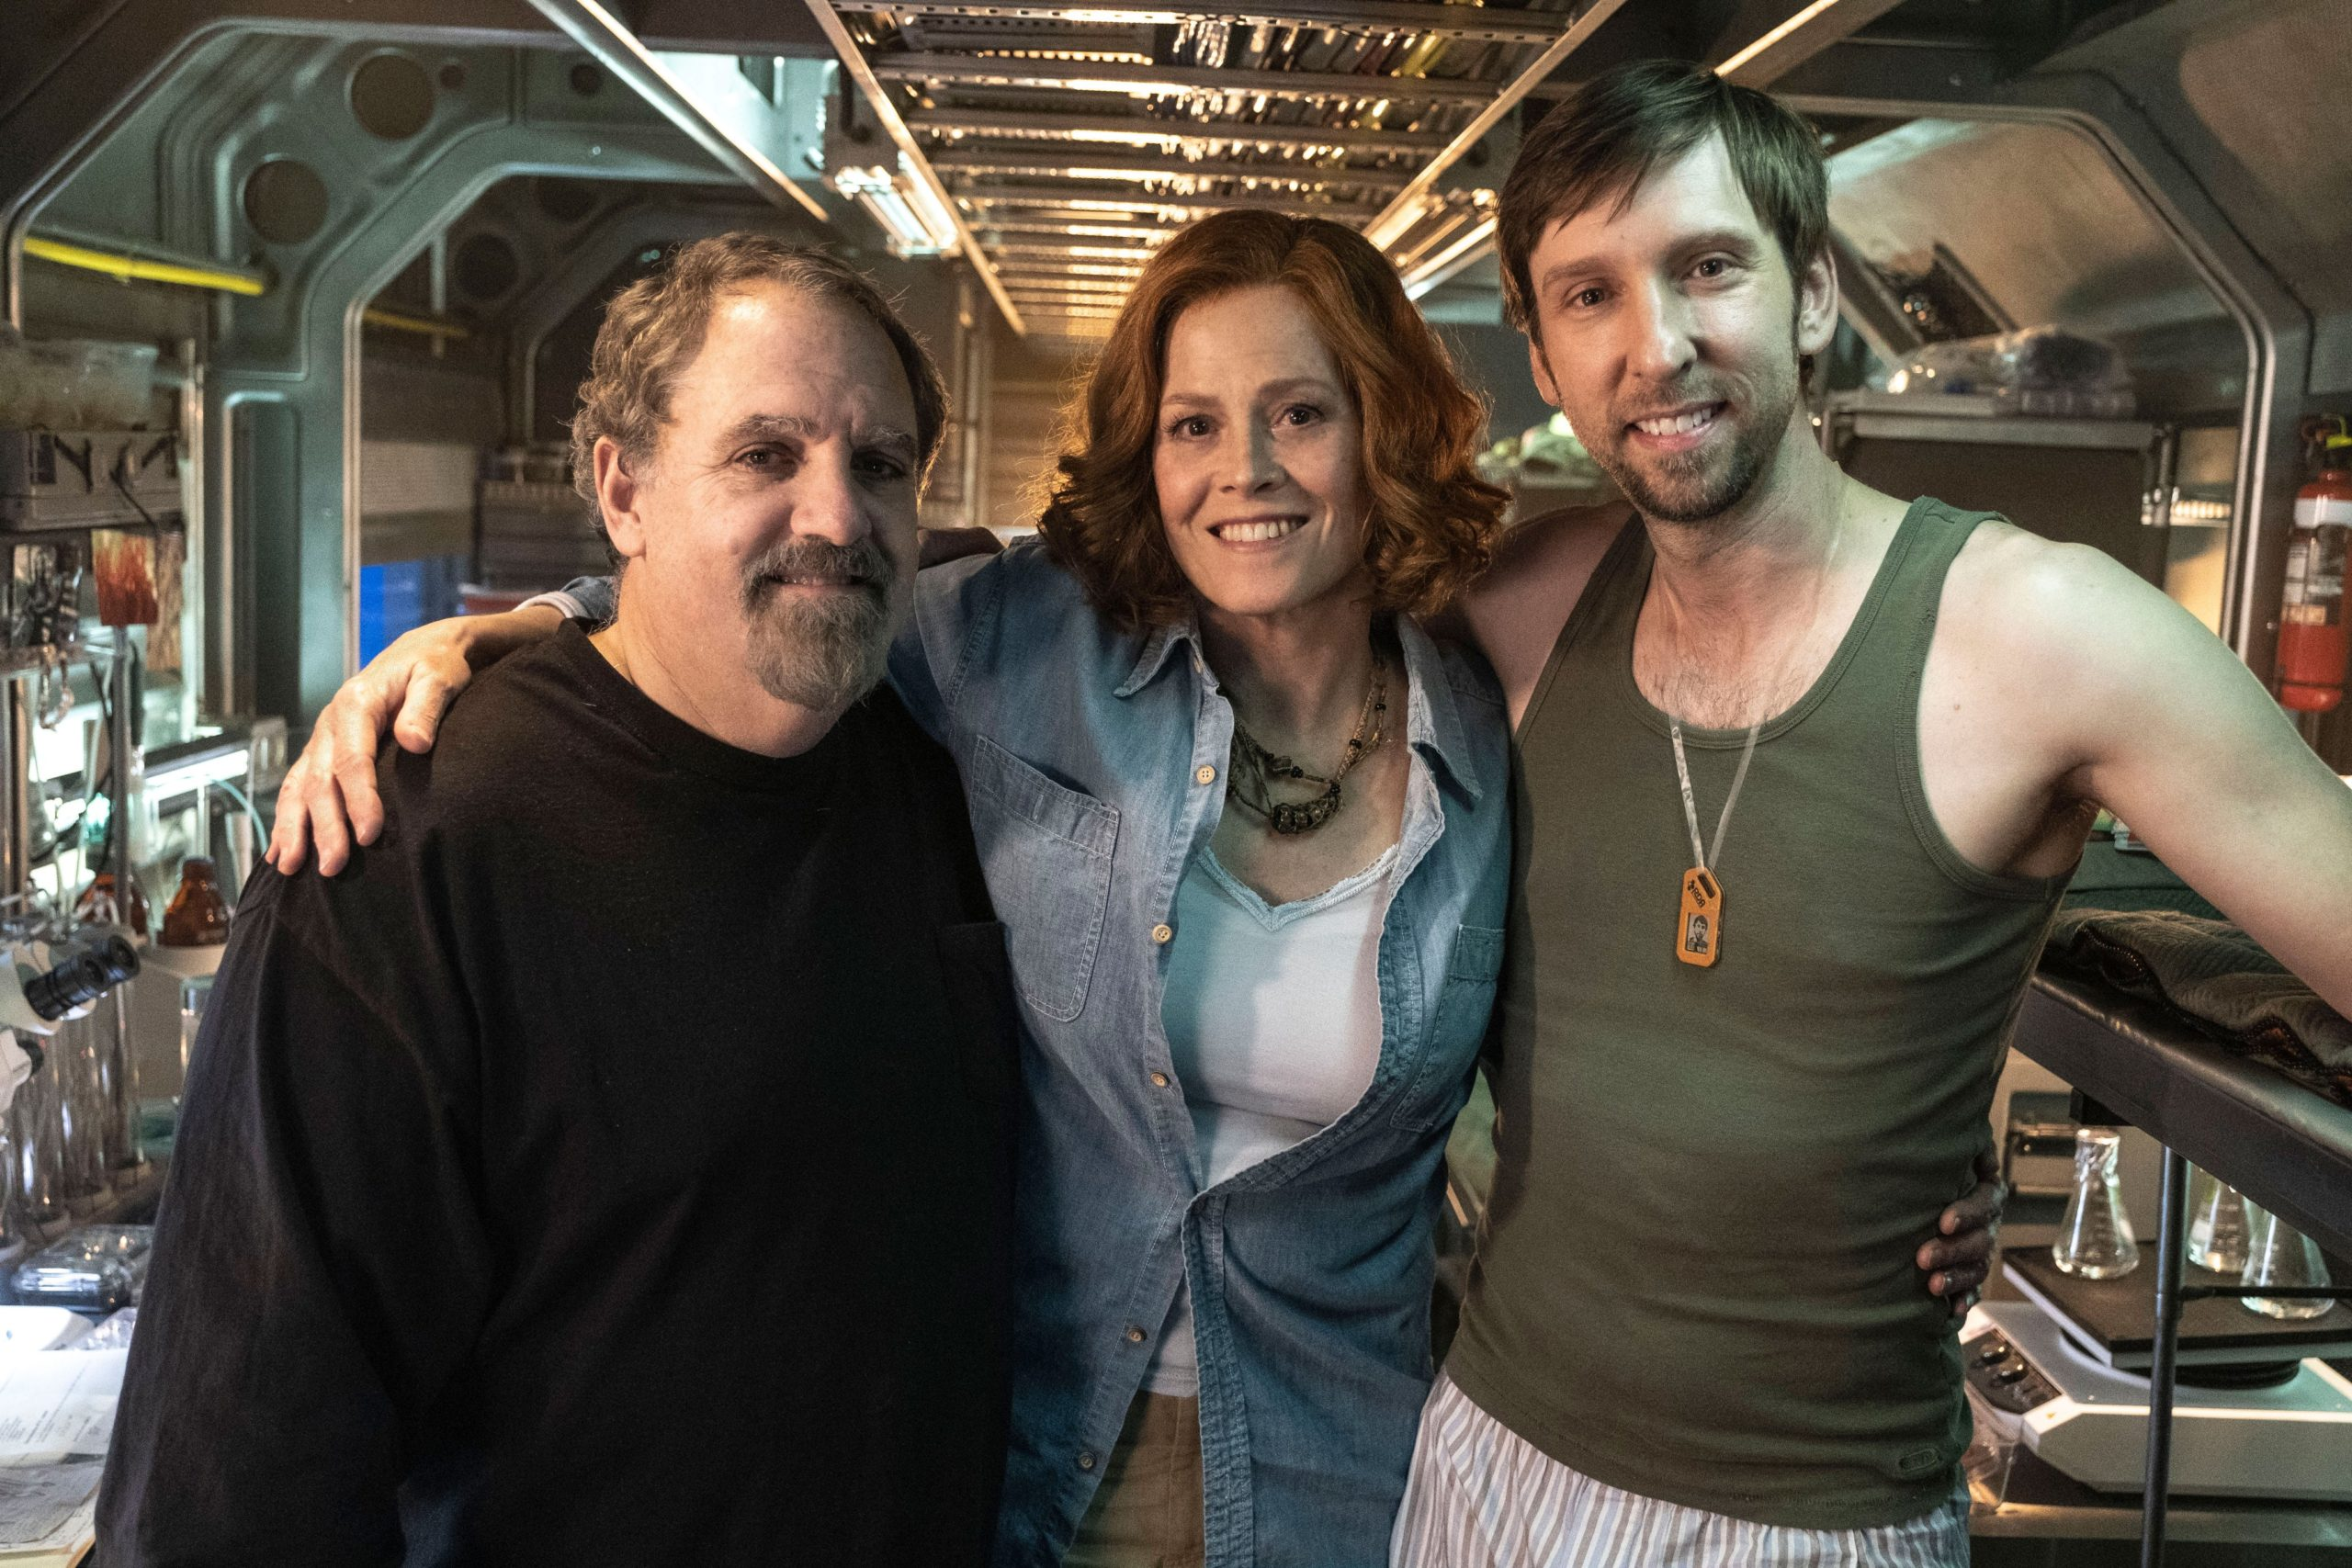 Avatar 2 Set Photo Jon Landau Sigourney Weaver Joel David Moore